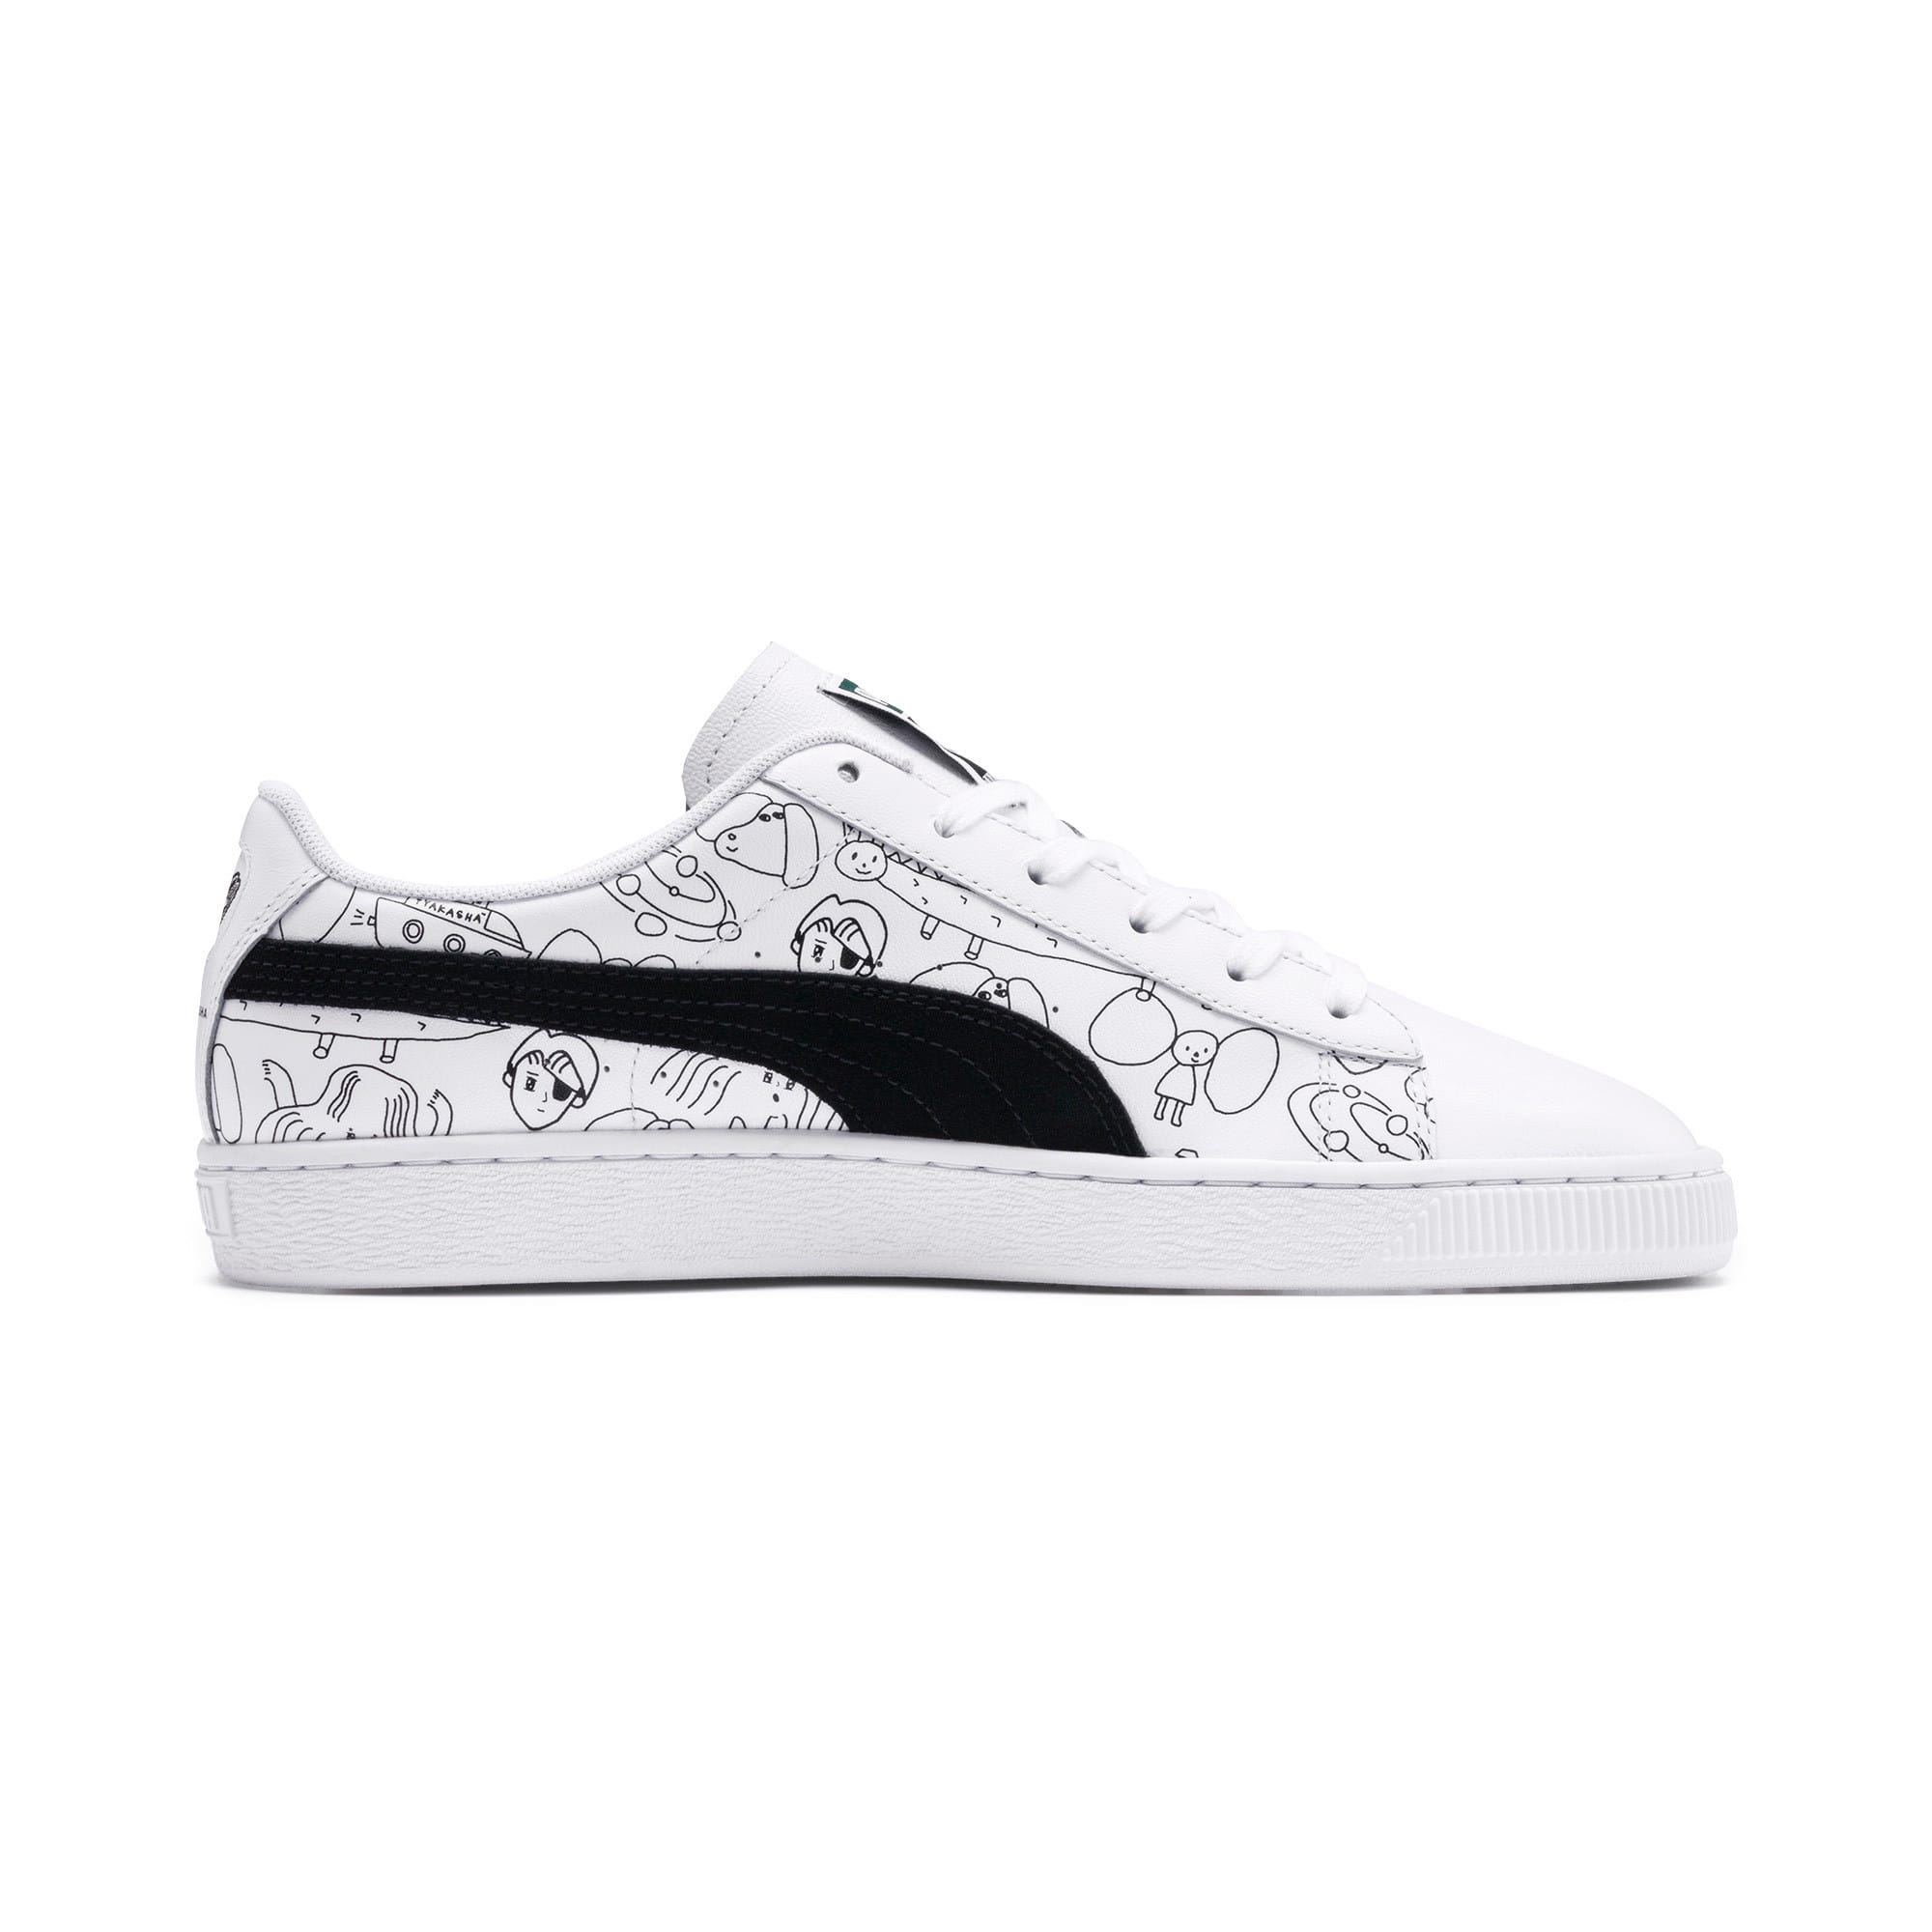 Thumbnail 5 of PUMA x TYAKASHA バスケット スニーカー, Puma White-Puma Black, medium-JPN